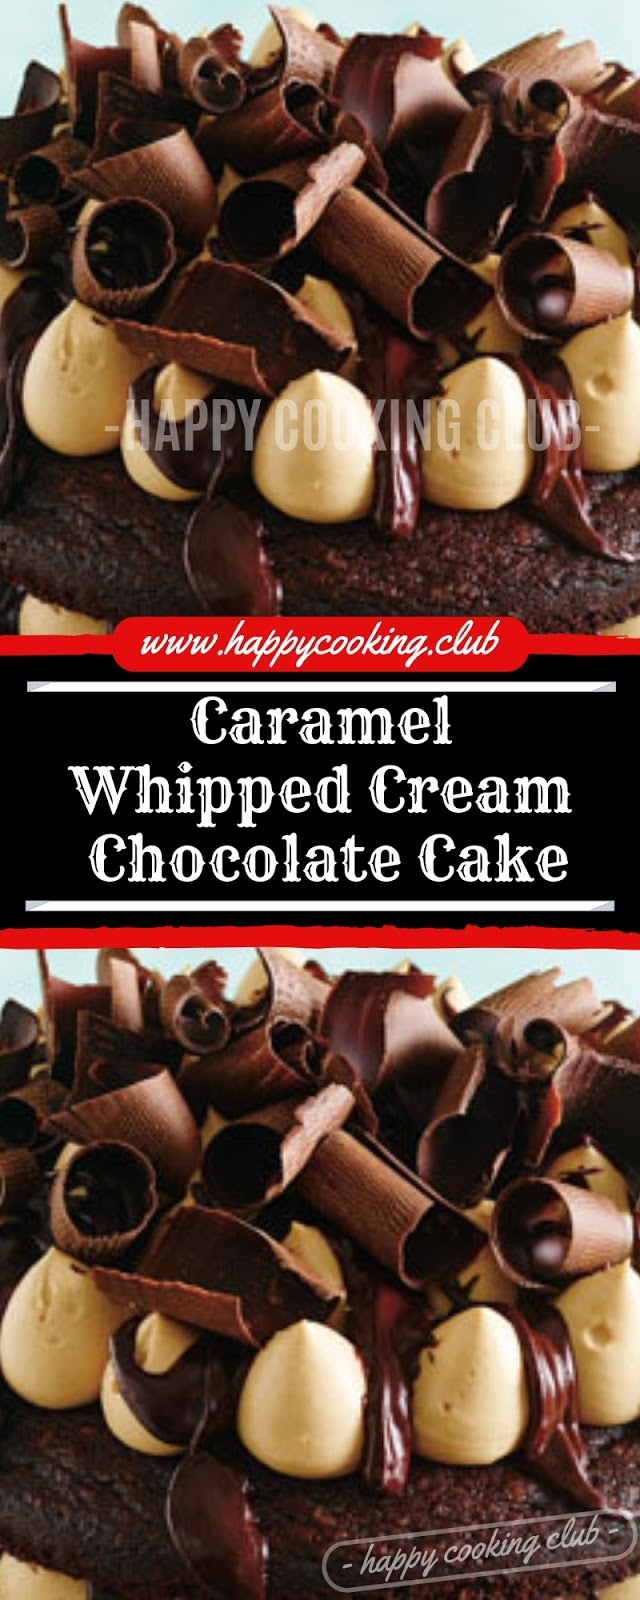 Caramel Whipped Cream Chocolate Cake